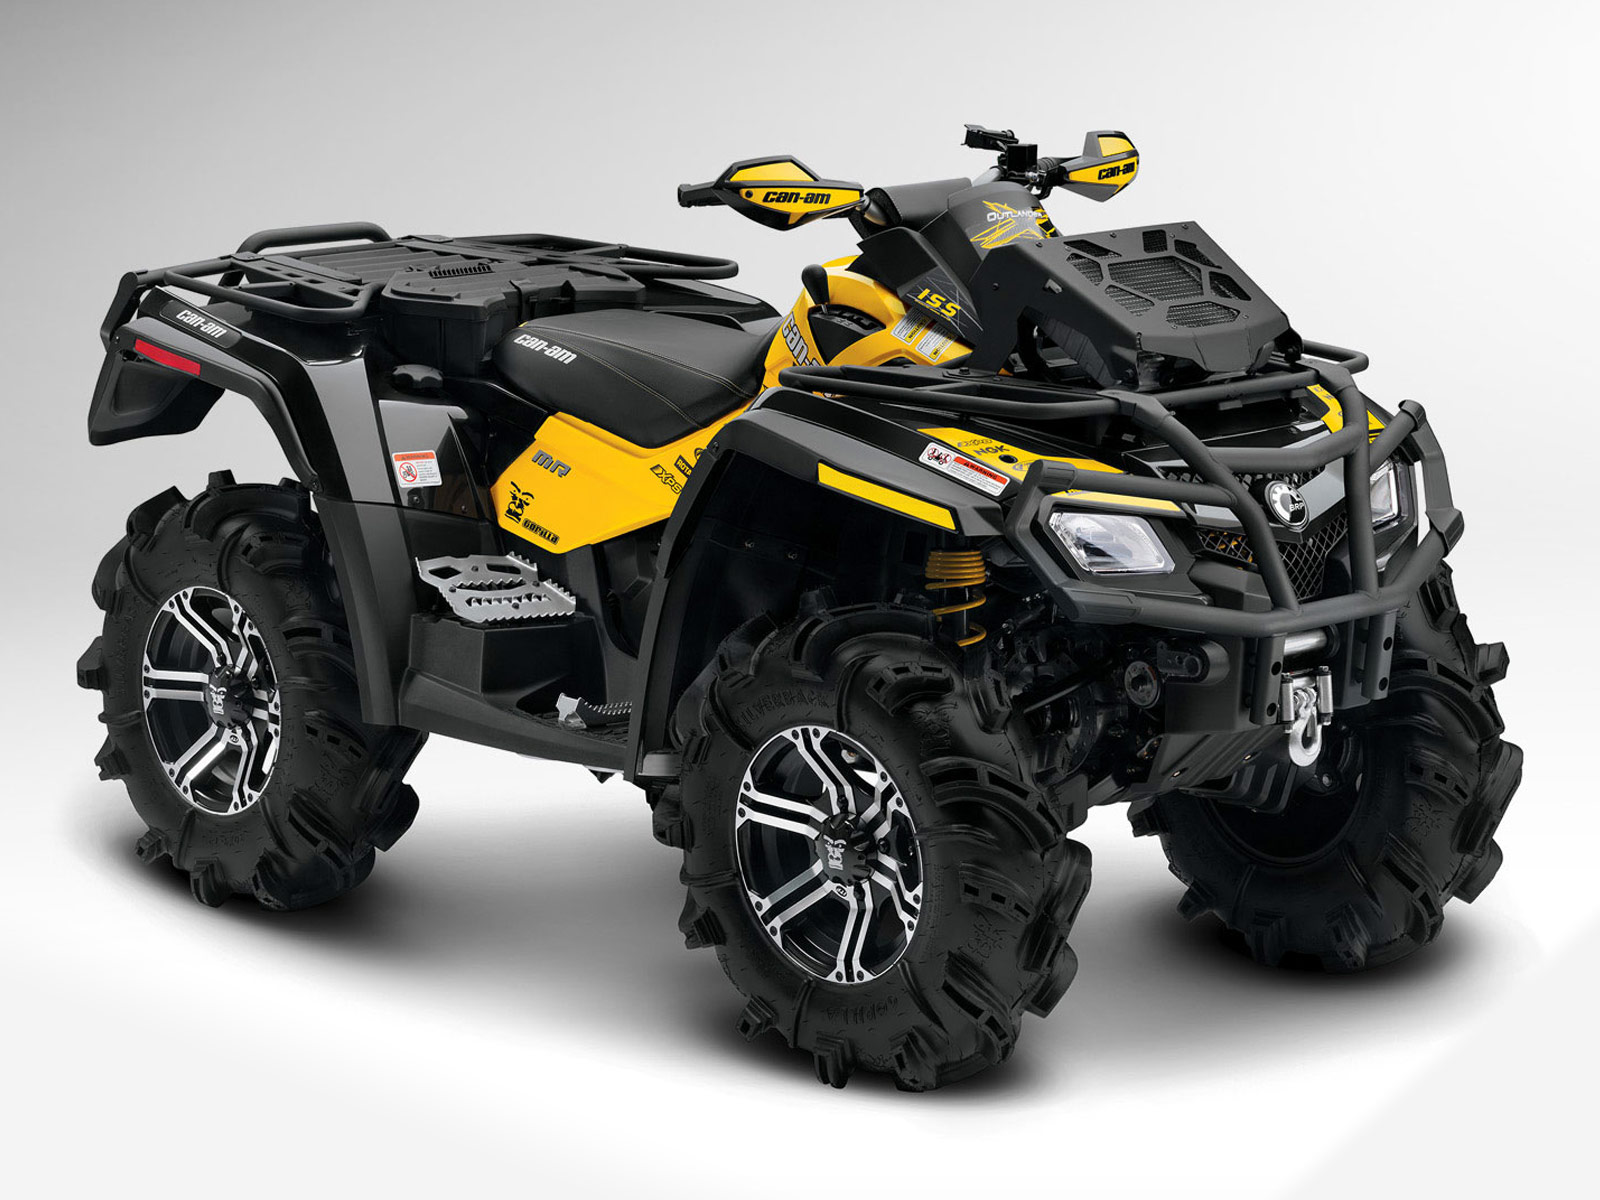 Can Am Outlander 800 Wiring Not Lossing Diagram Polaris Sportsman 850 Engine Honda Foreman 500 07 2013